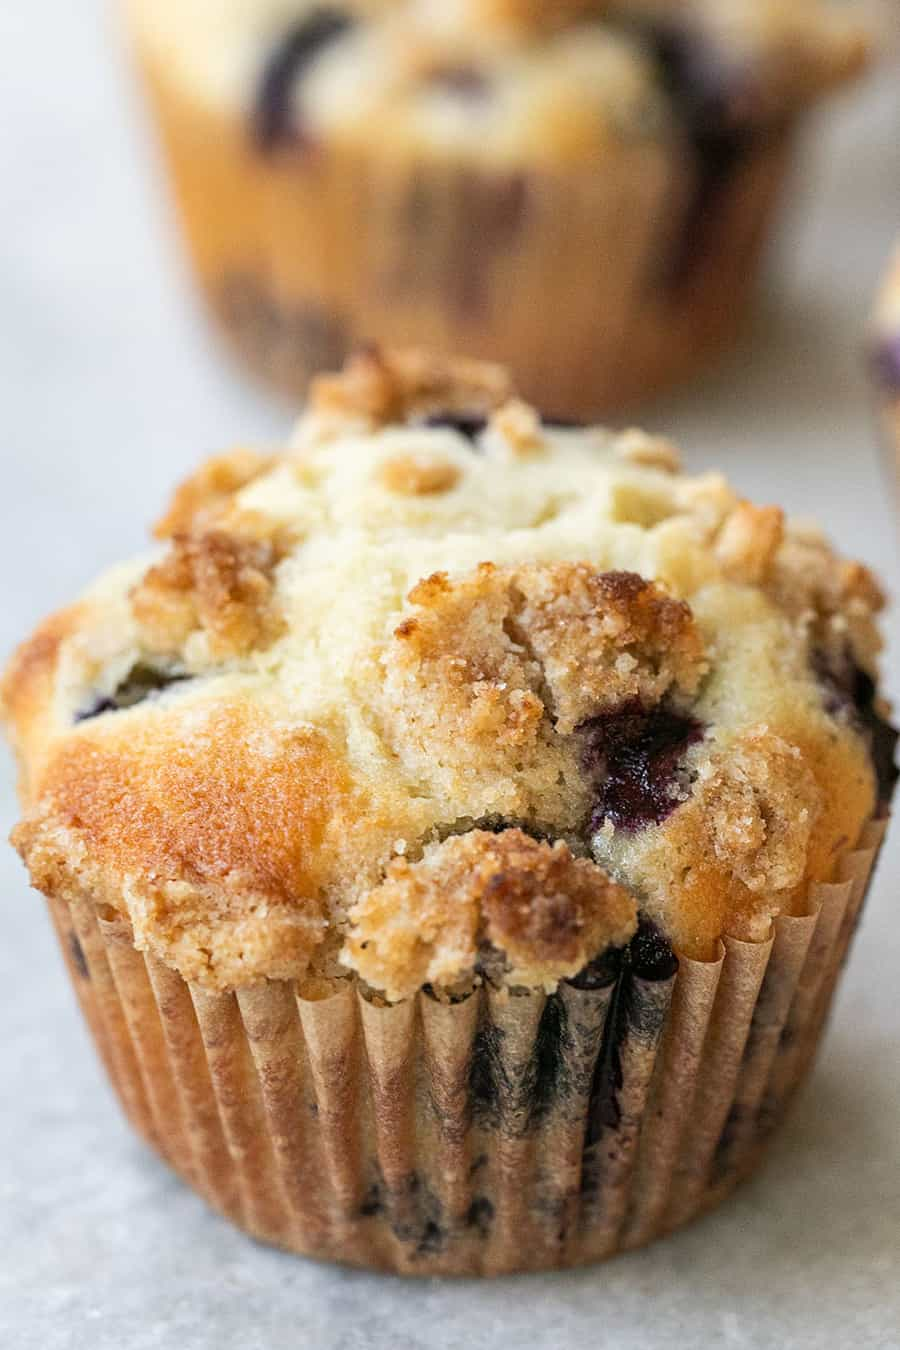 Blueberry muffins with a golden brown top